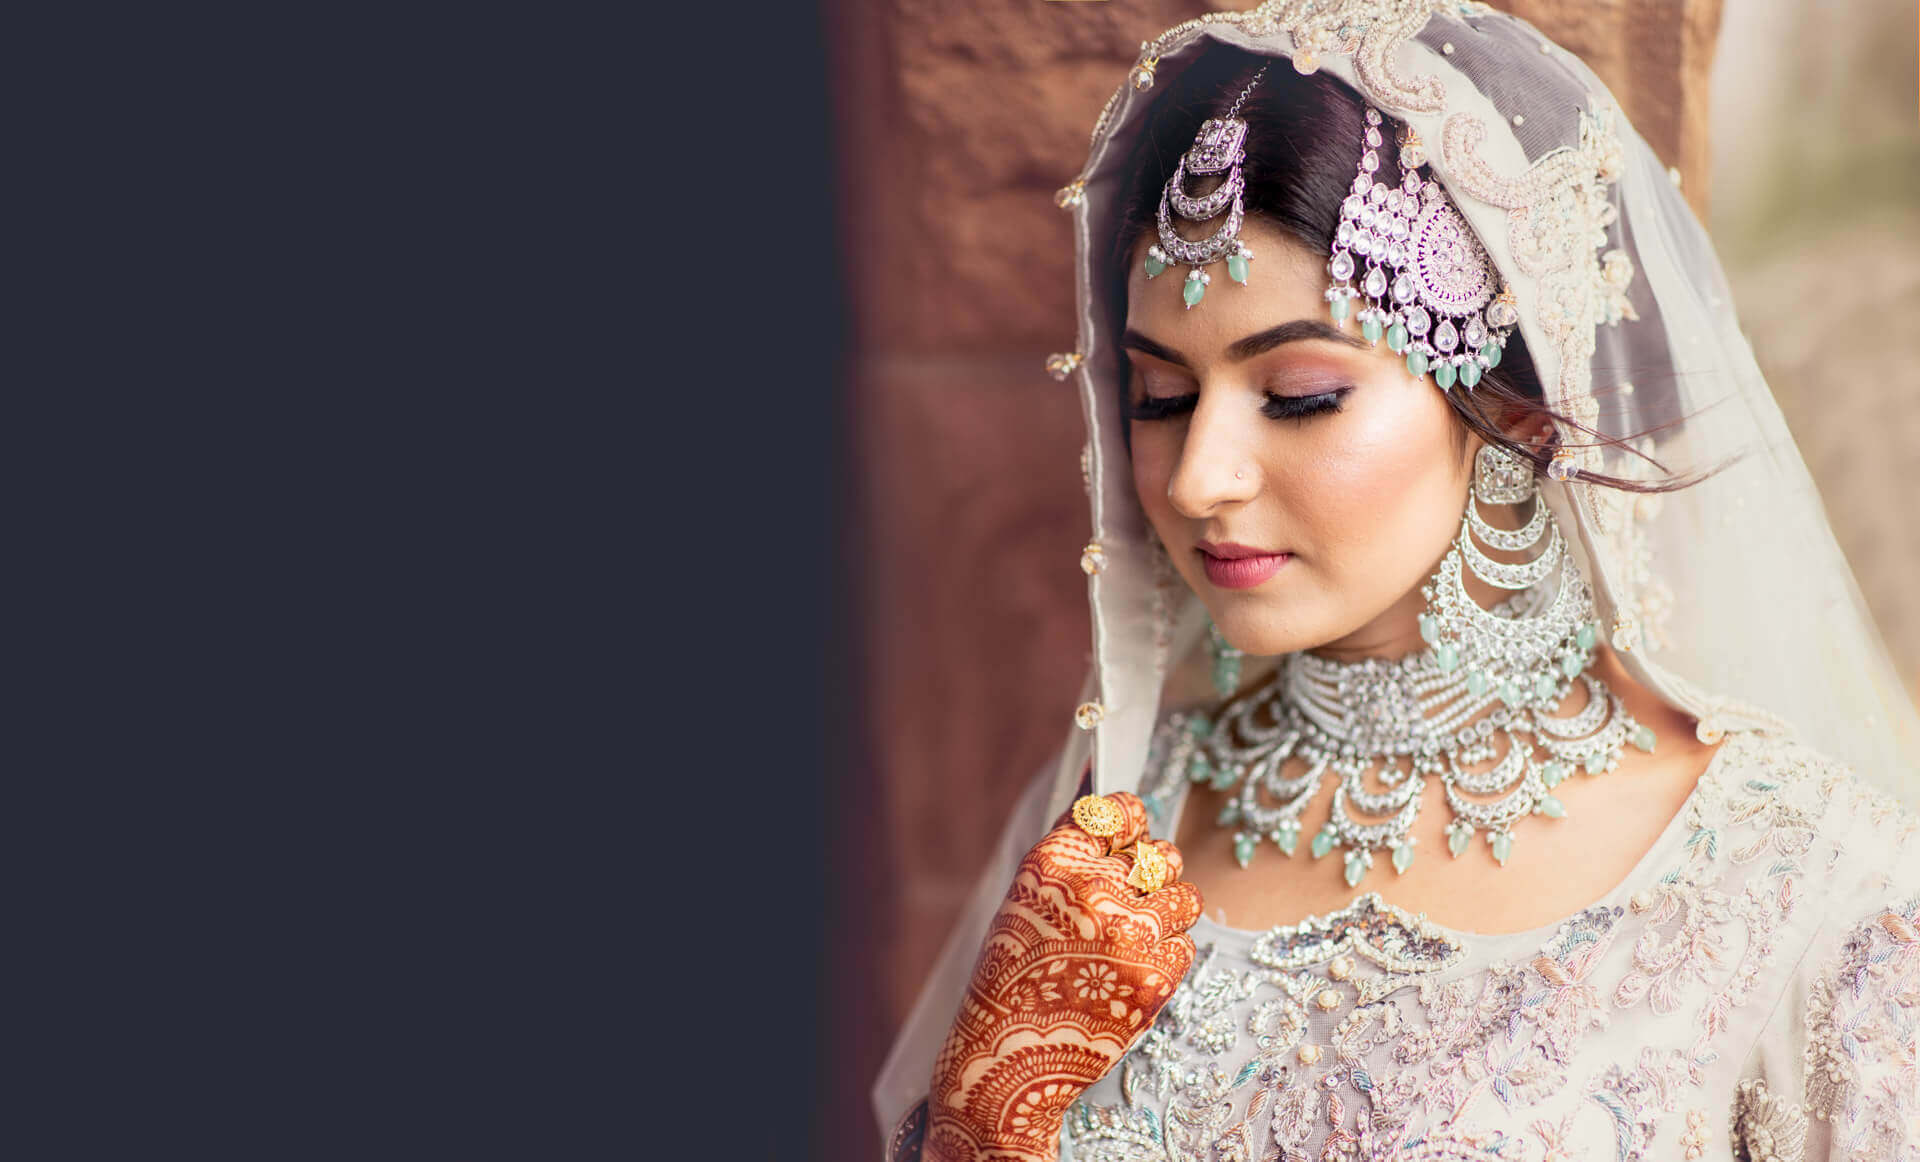 Amazing Pakistani Bride Pose